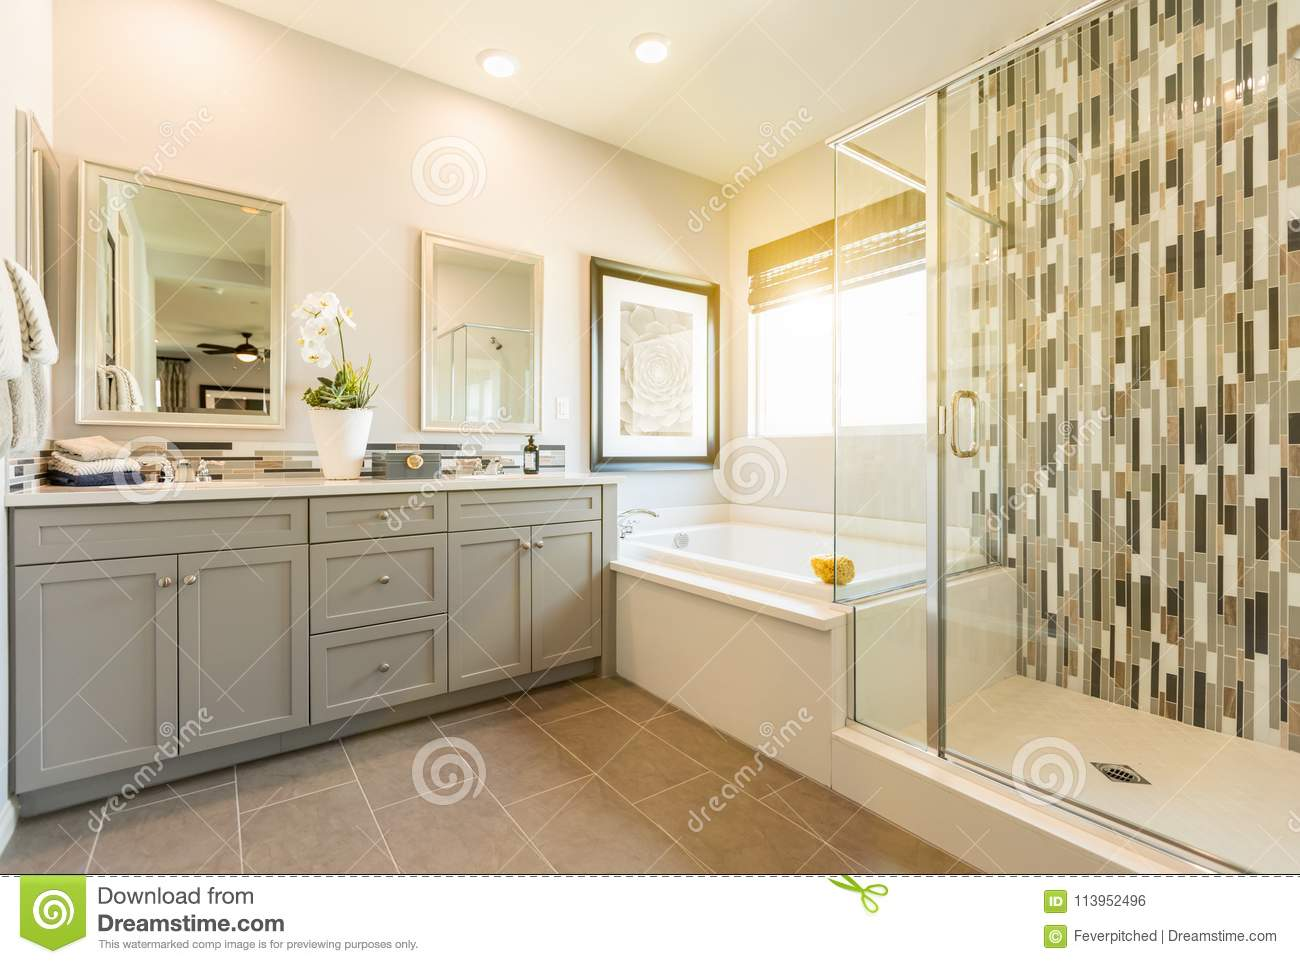 2 699 Master Bathroom Photos Free Royalty Free Stock Photos From Dreamstime